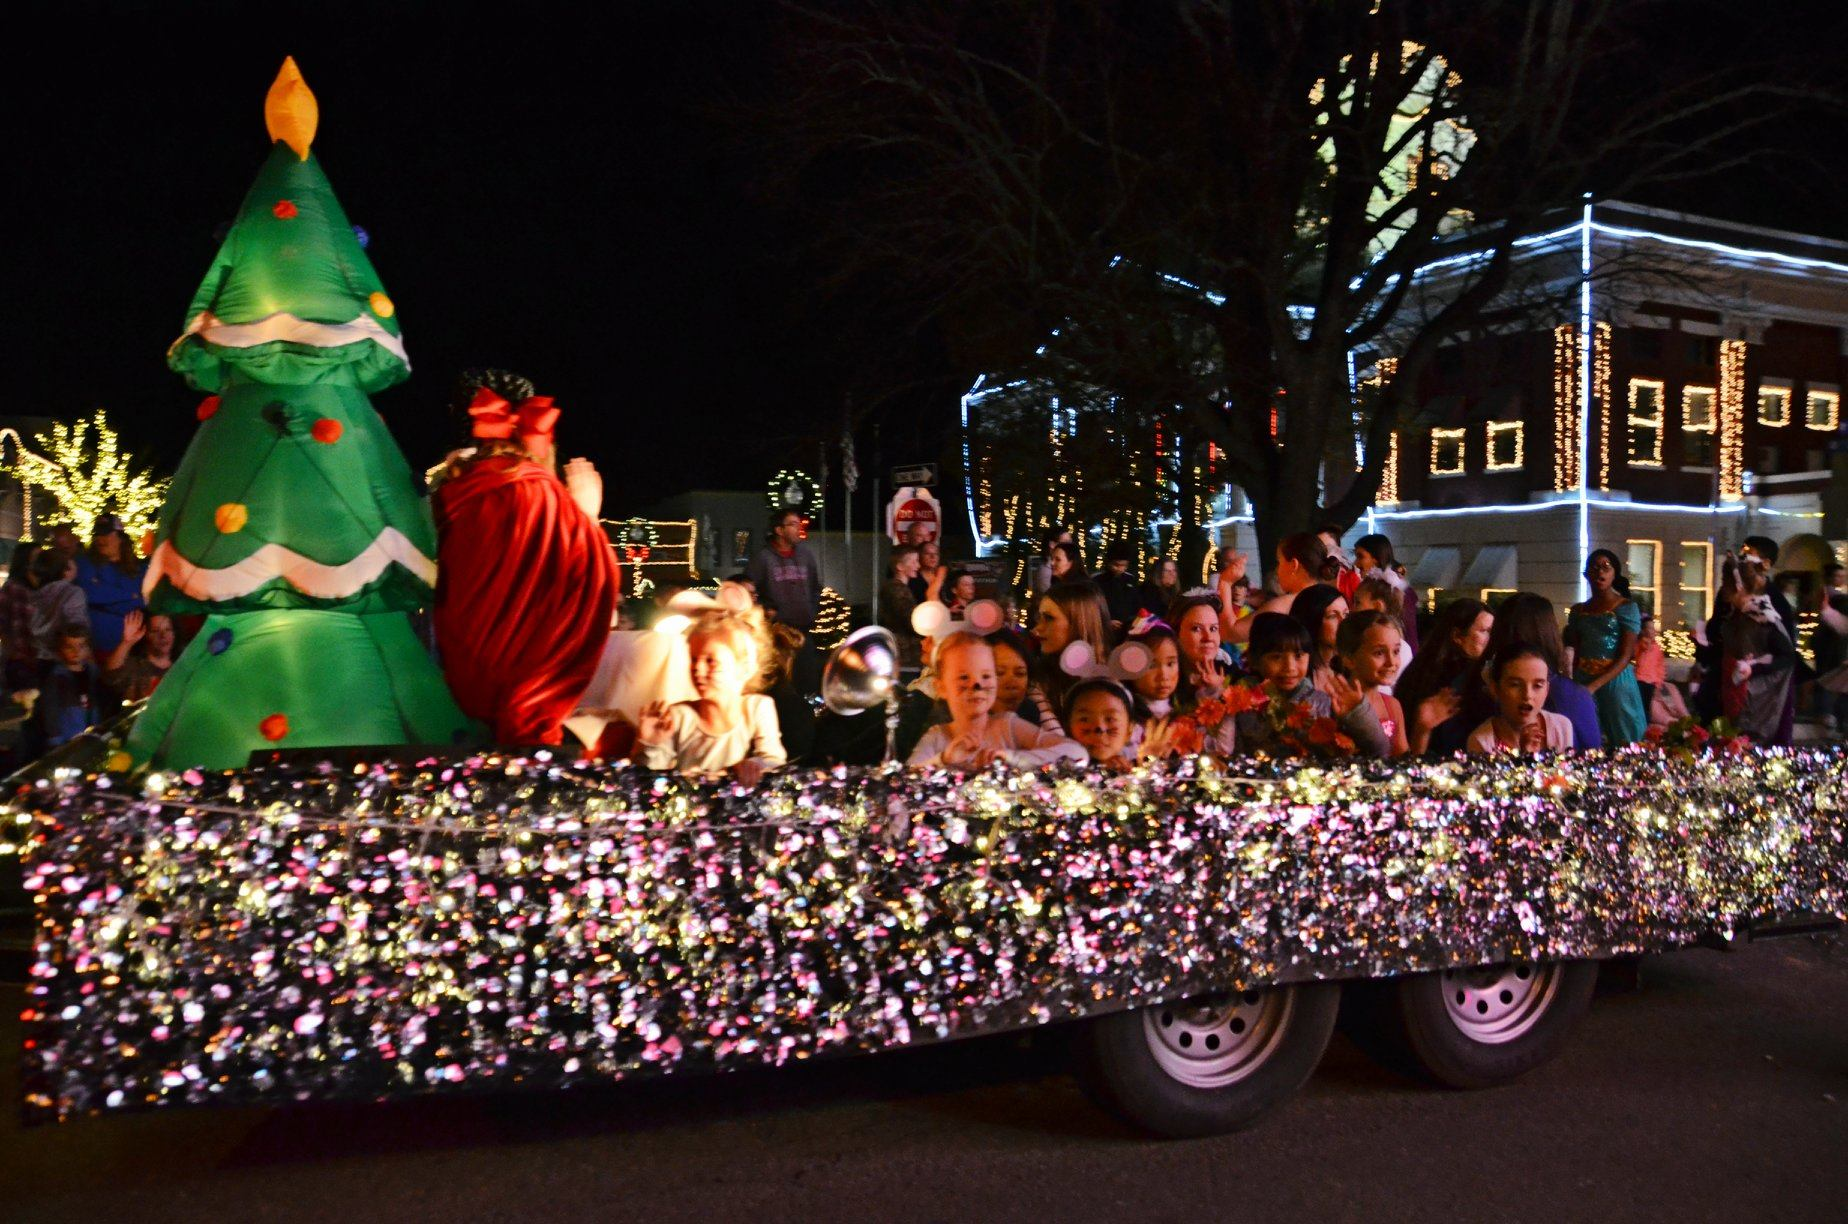 Searcy Christmas Parade 2020 Searcy Christmas Parade moved to Monday, December 16th | KARK